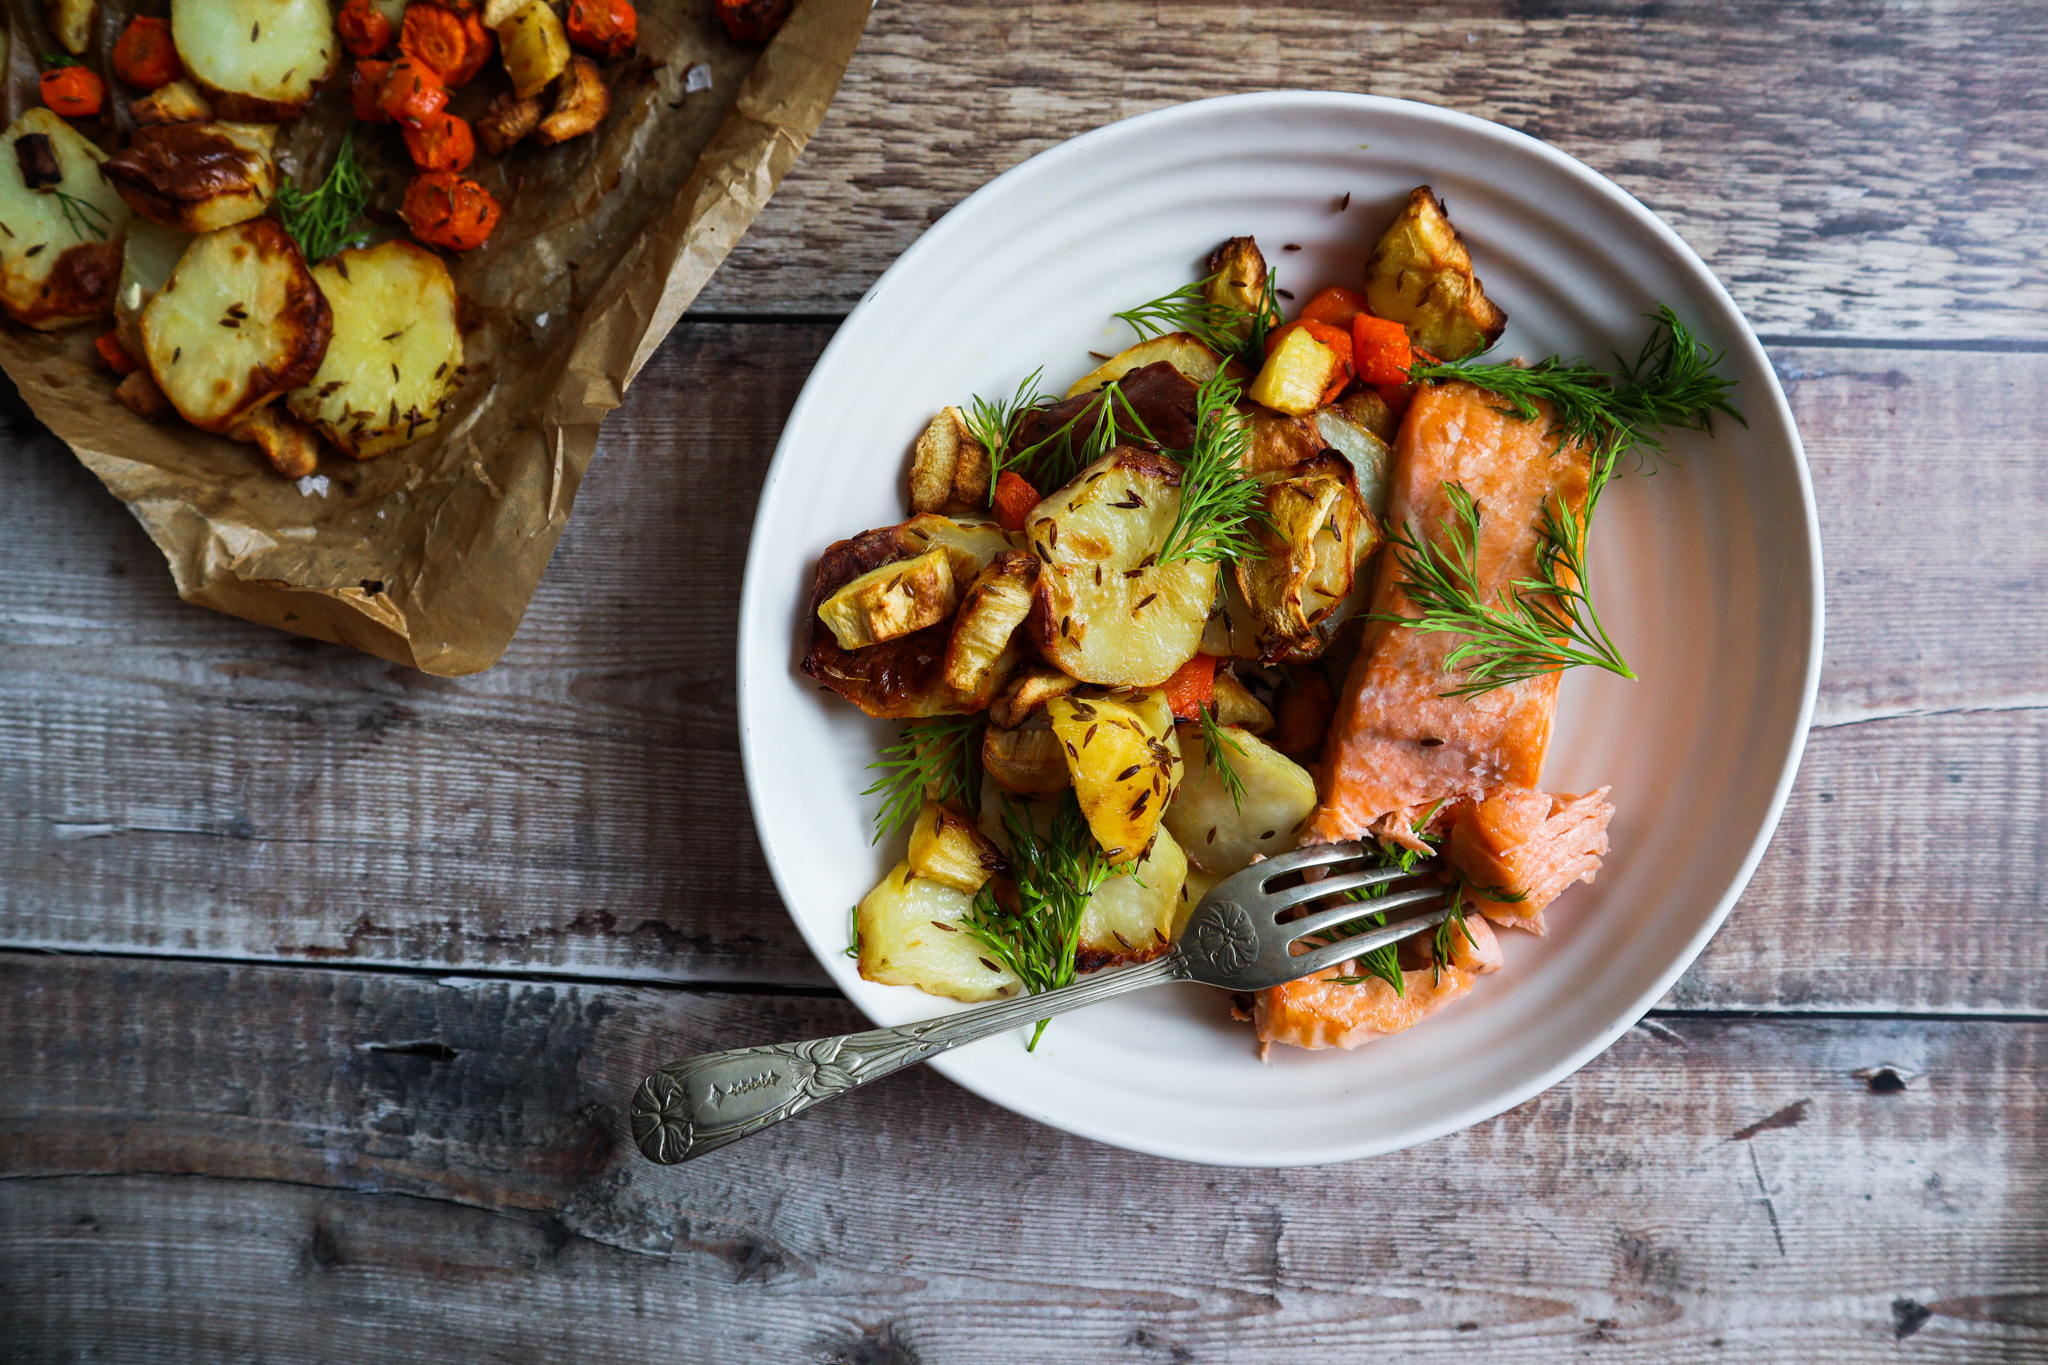 Baked Salmon with roast vegetables and dill